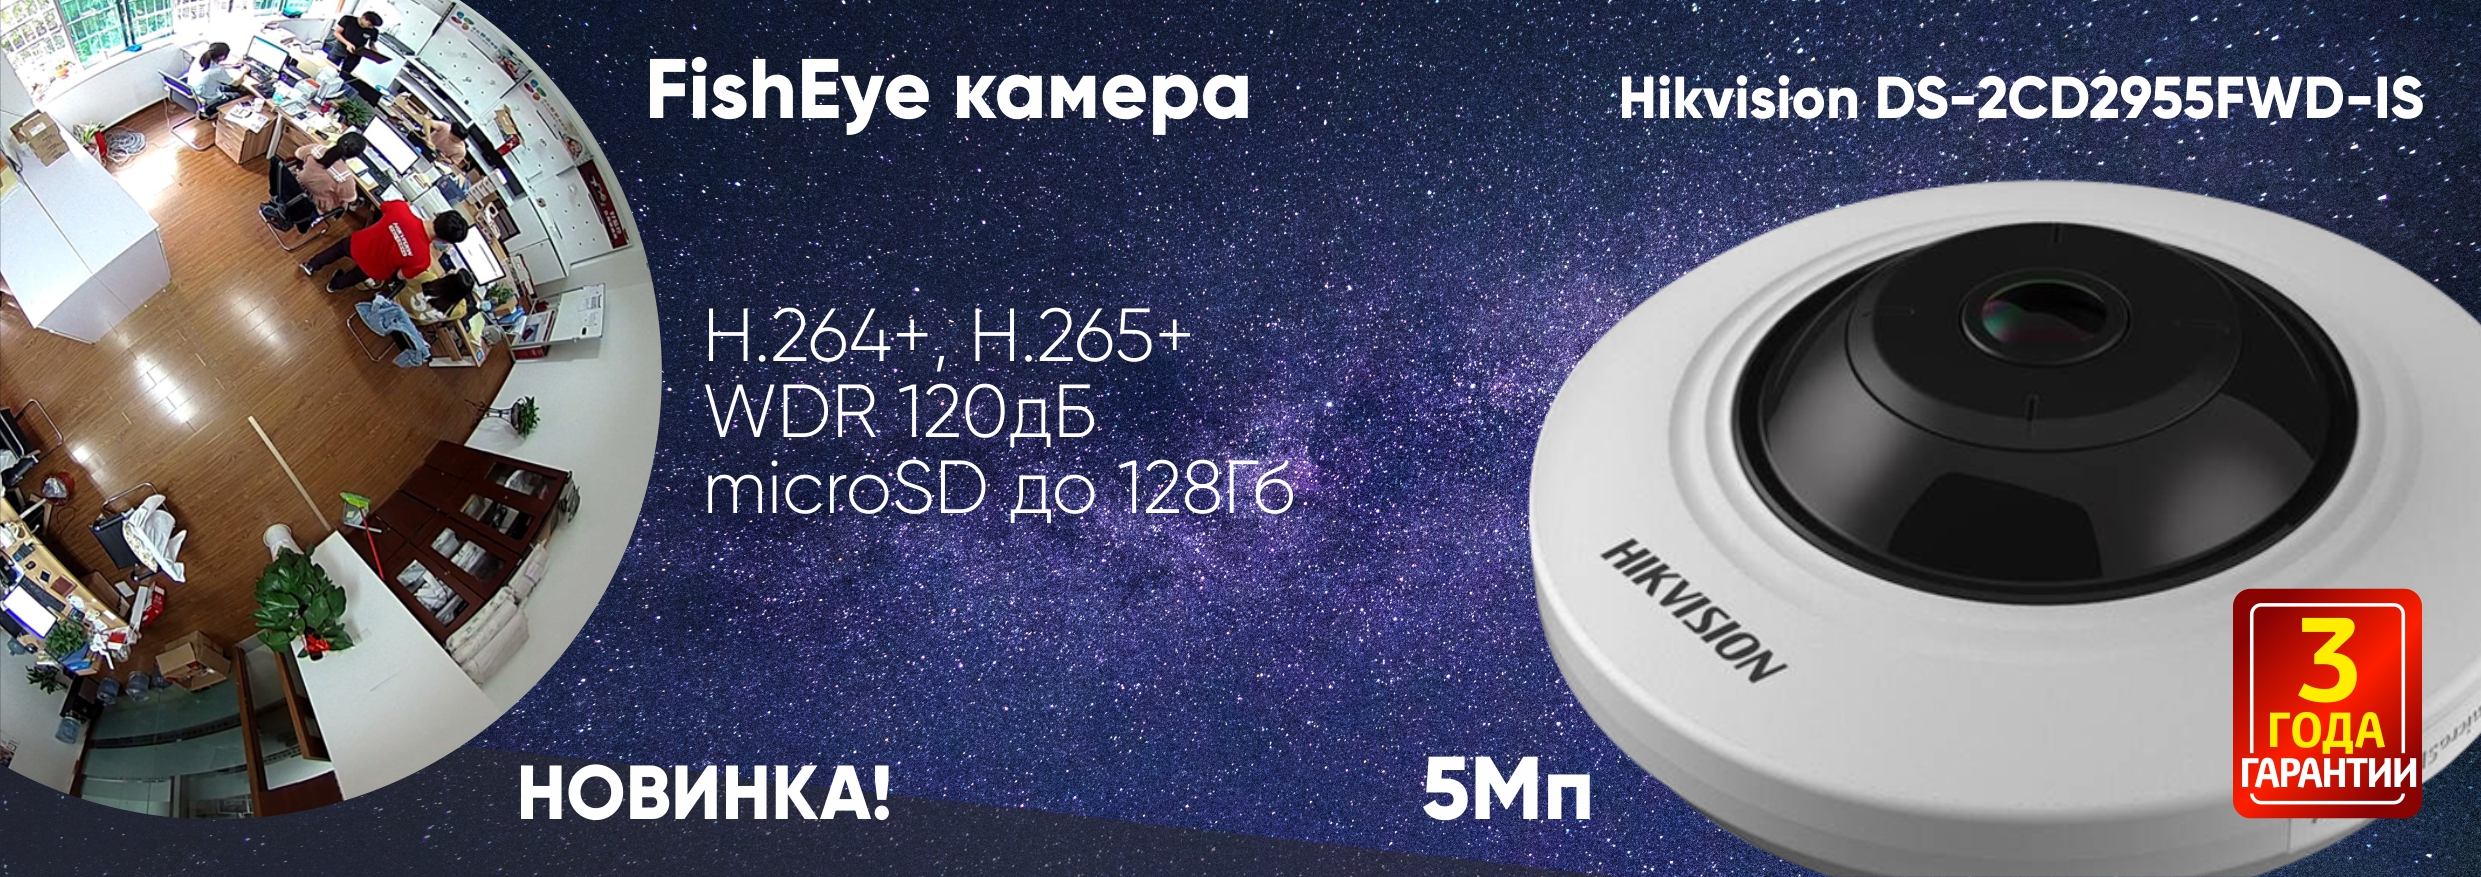 Новинка от HIKVISION - IP-камера «рыбий глаз» DS-2CD2955FWD-IS